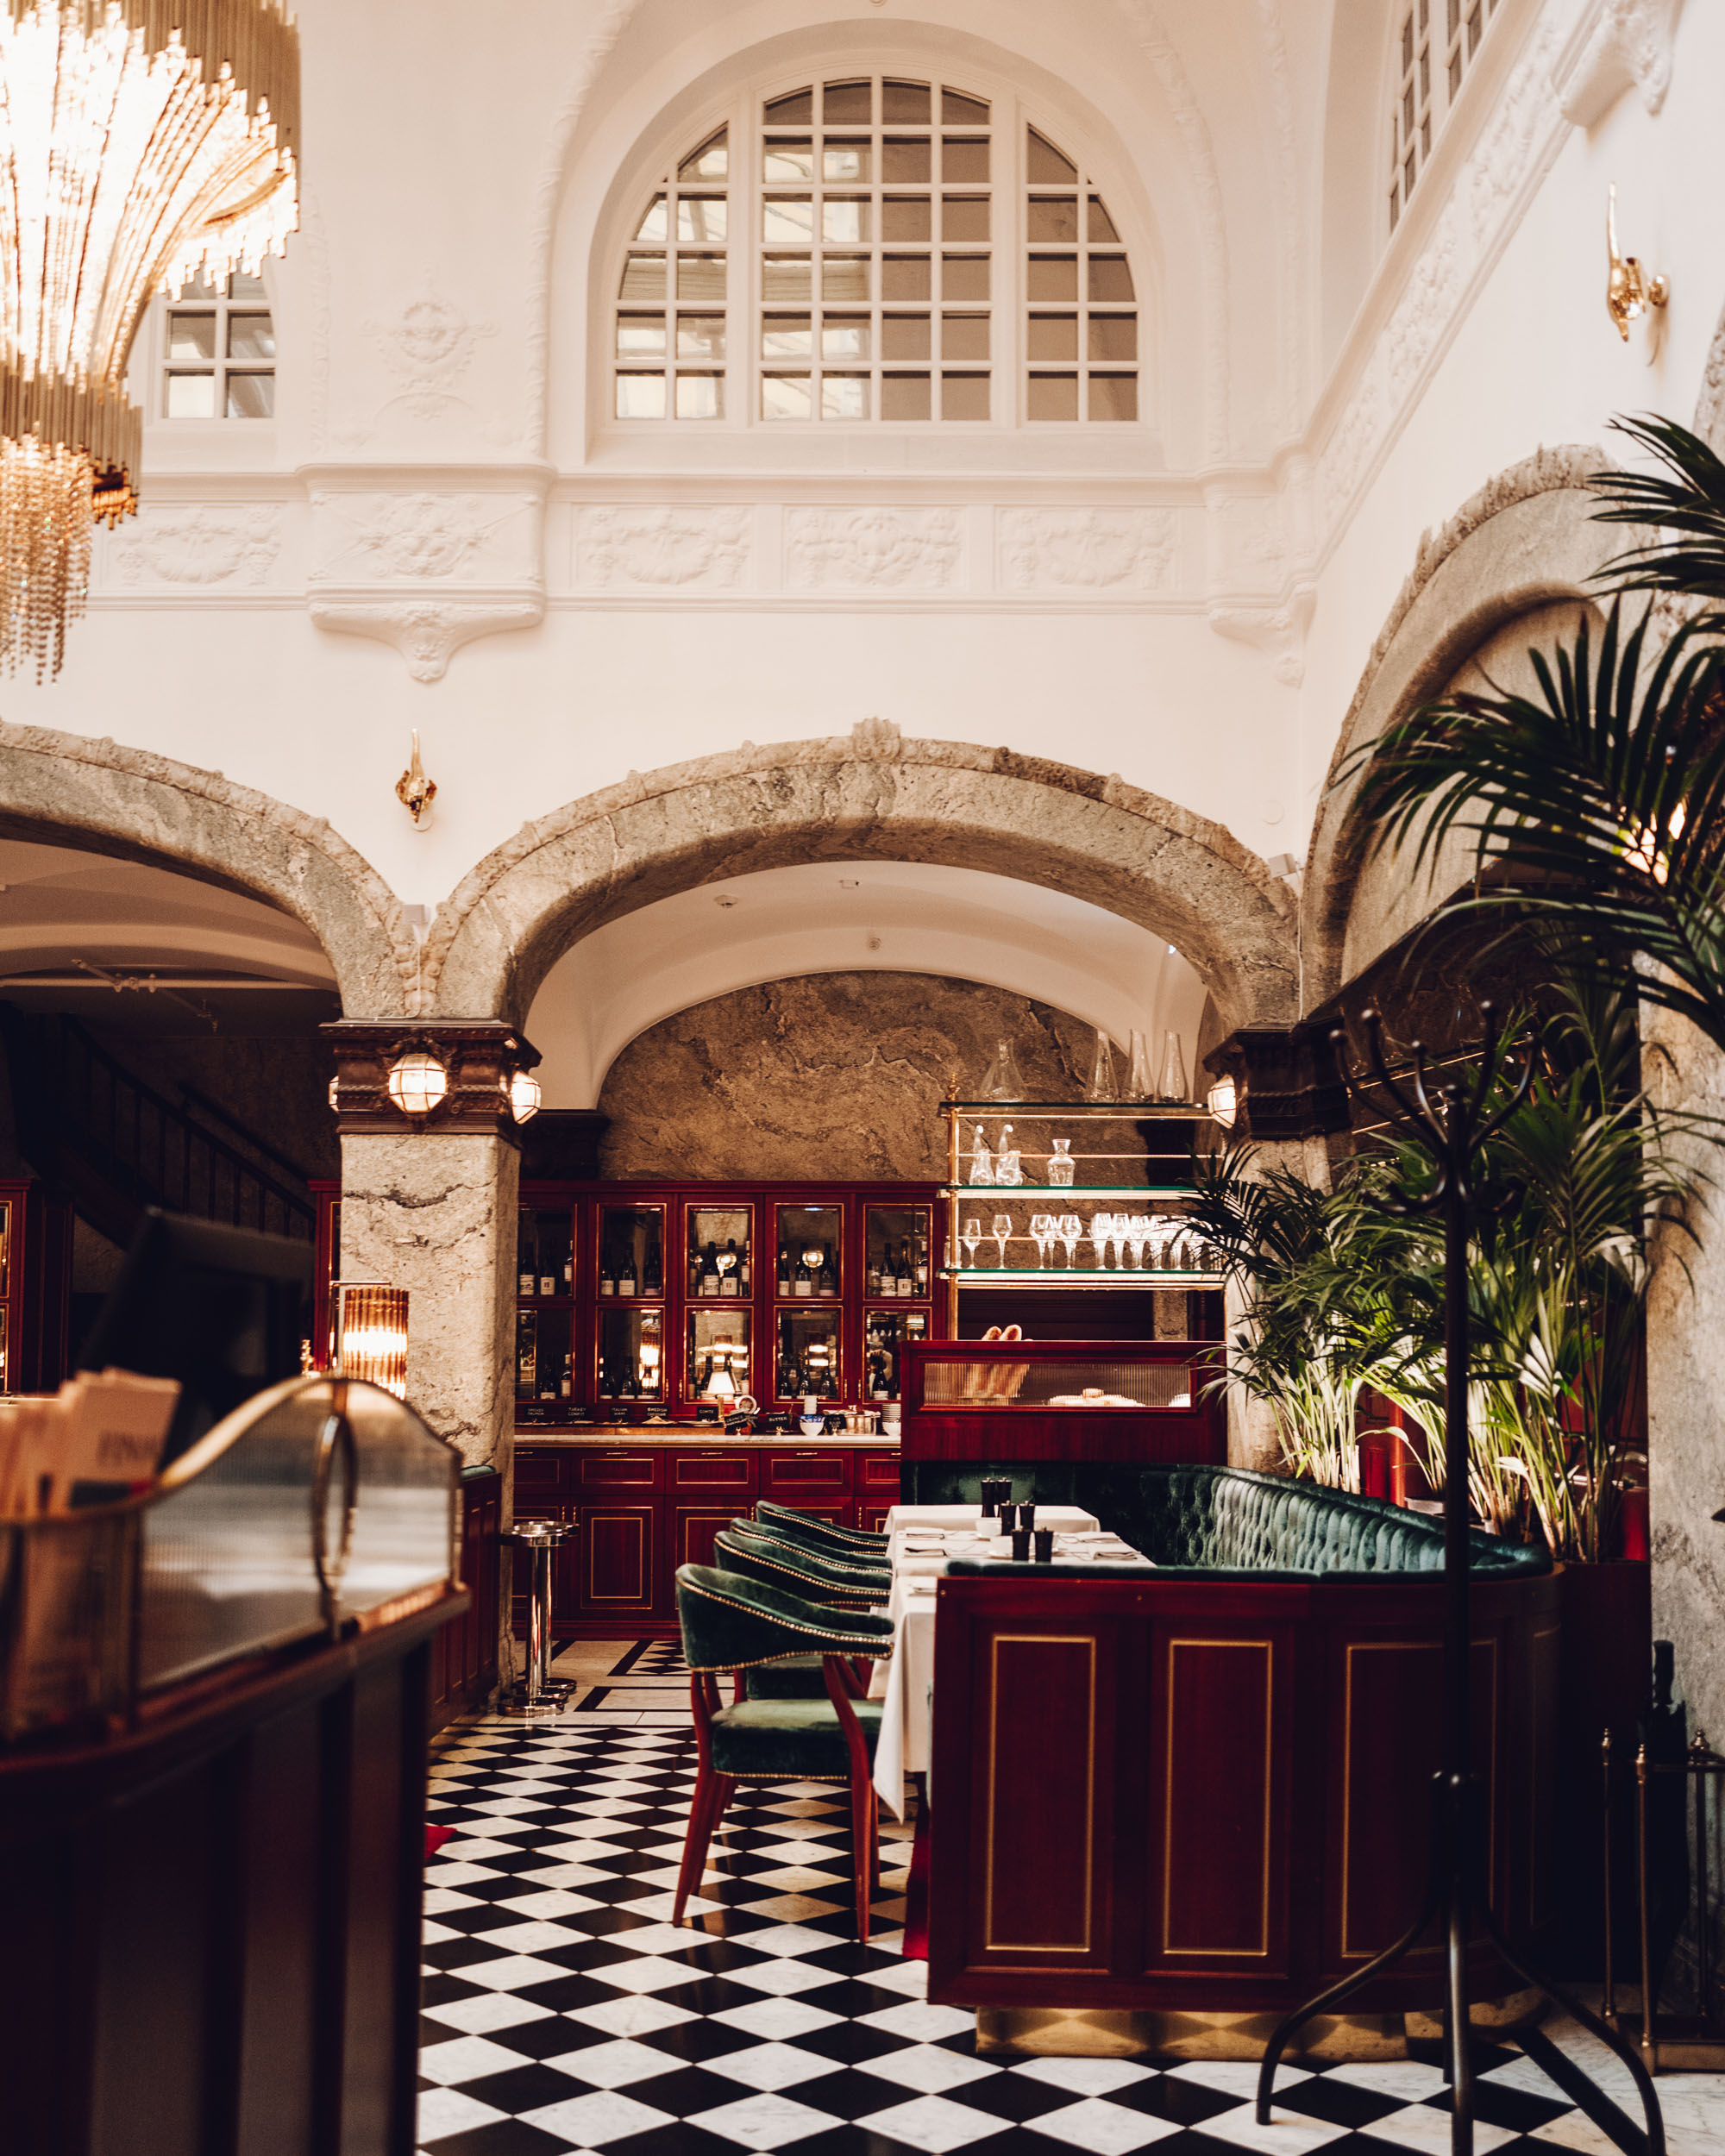 Bonnies restaurant at the Bank Hotel in Stockholm, Sweden - A Small Luxury Hotel